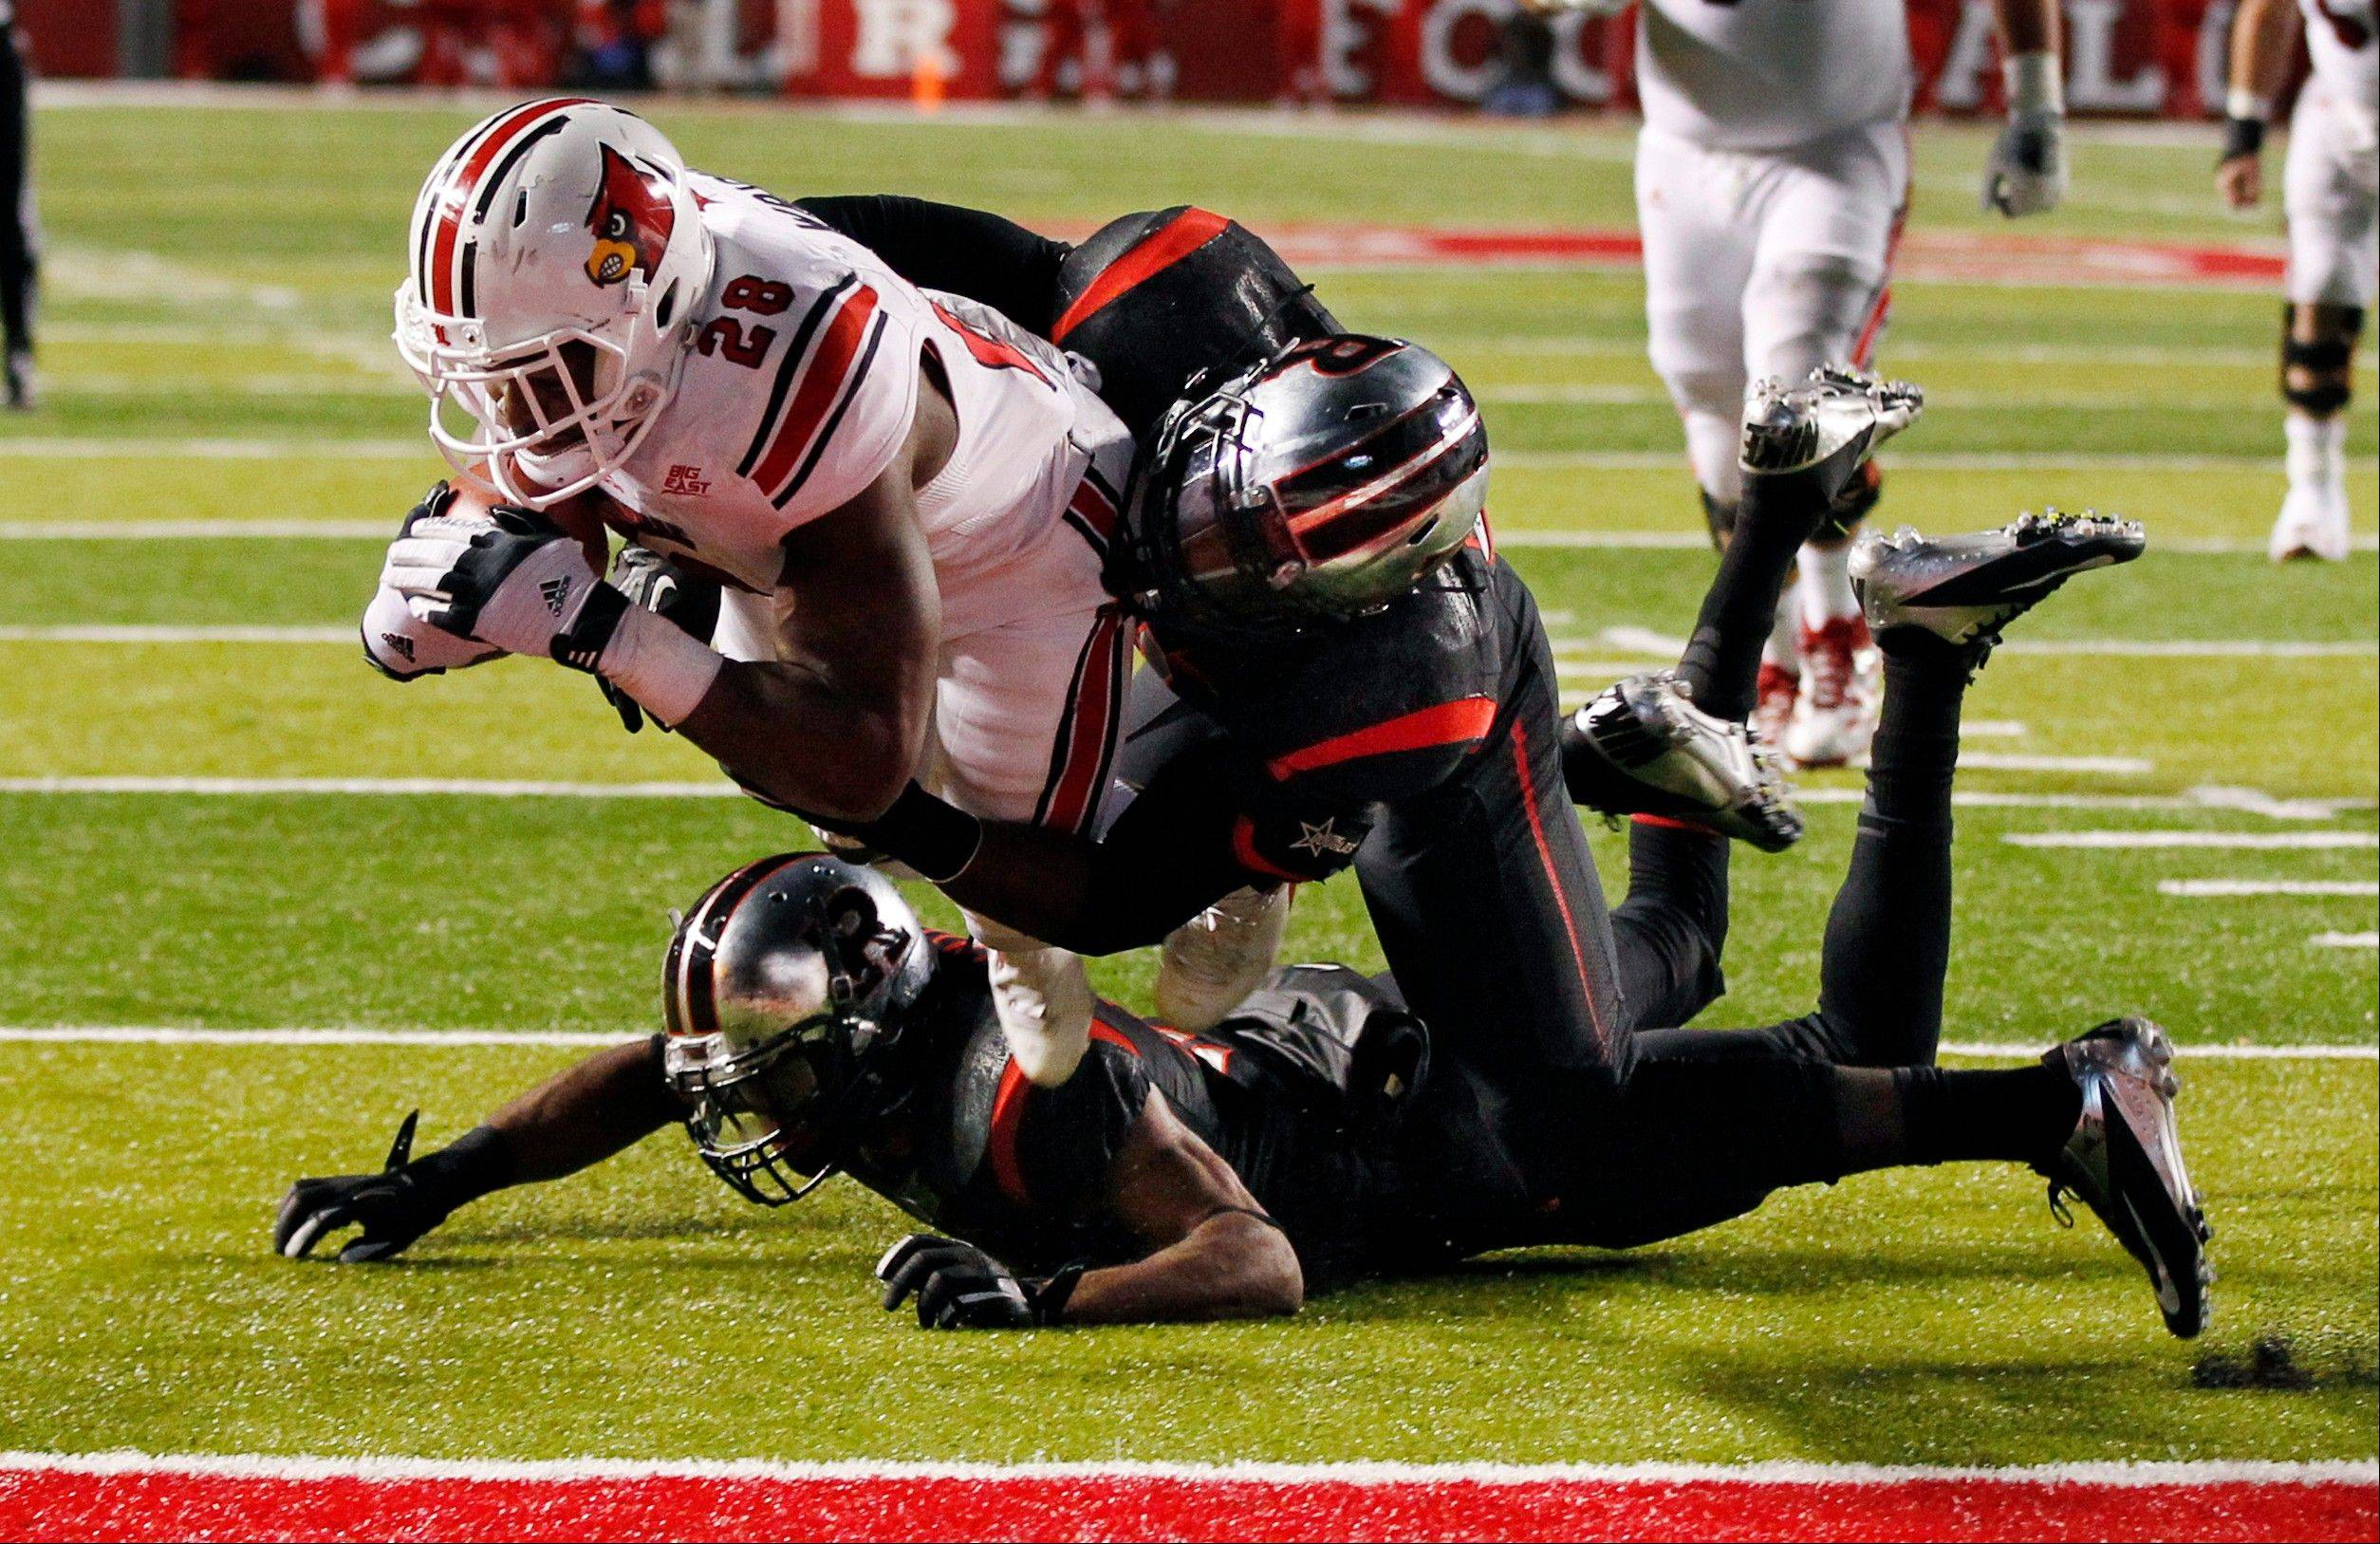 Louisville running back Jeremy Wright (28) dives over Rutgers defenders for a touchdown during the second half of an NCAA college football game in Piscataway, N.J., Thursday, Nov. 29, 2012. Louisville won 20-17.